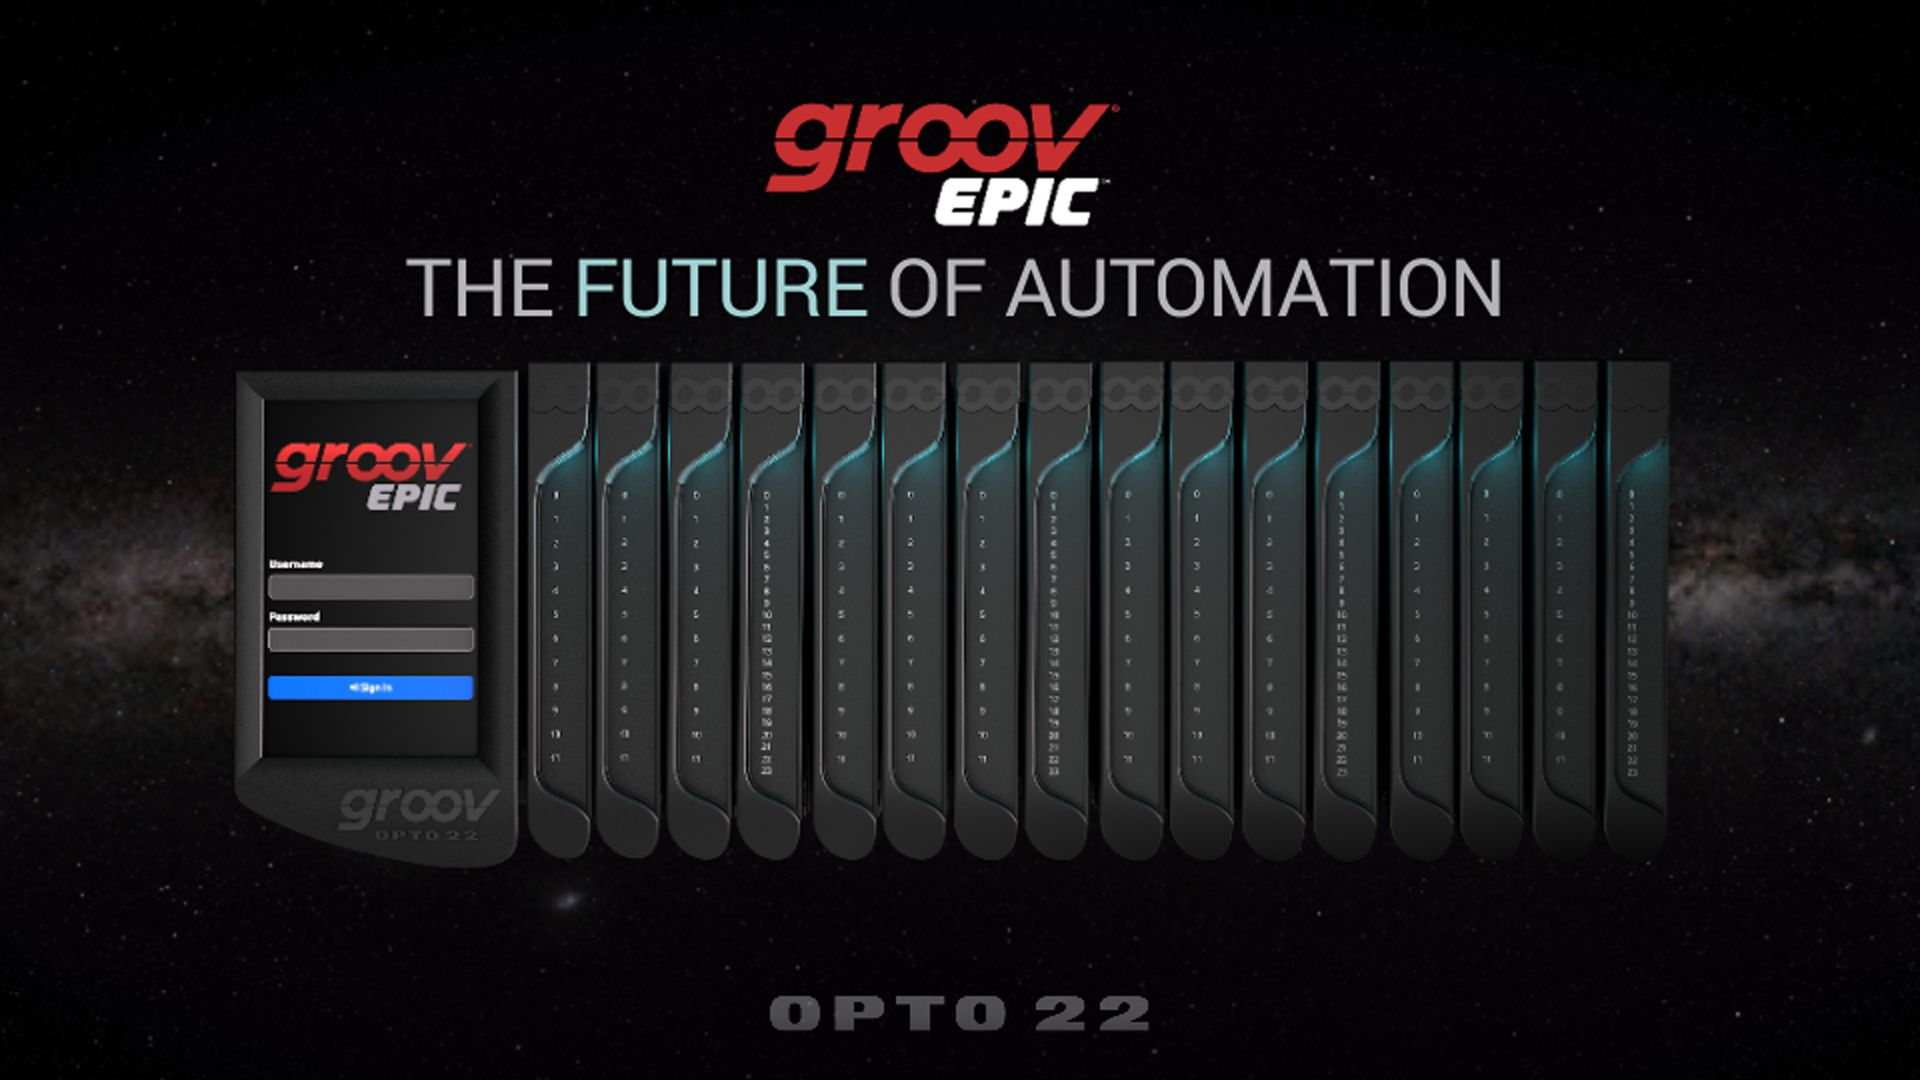 Take another look at groov EPIC